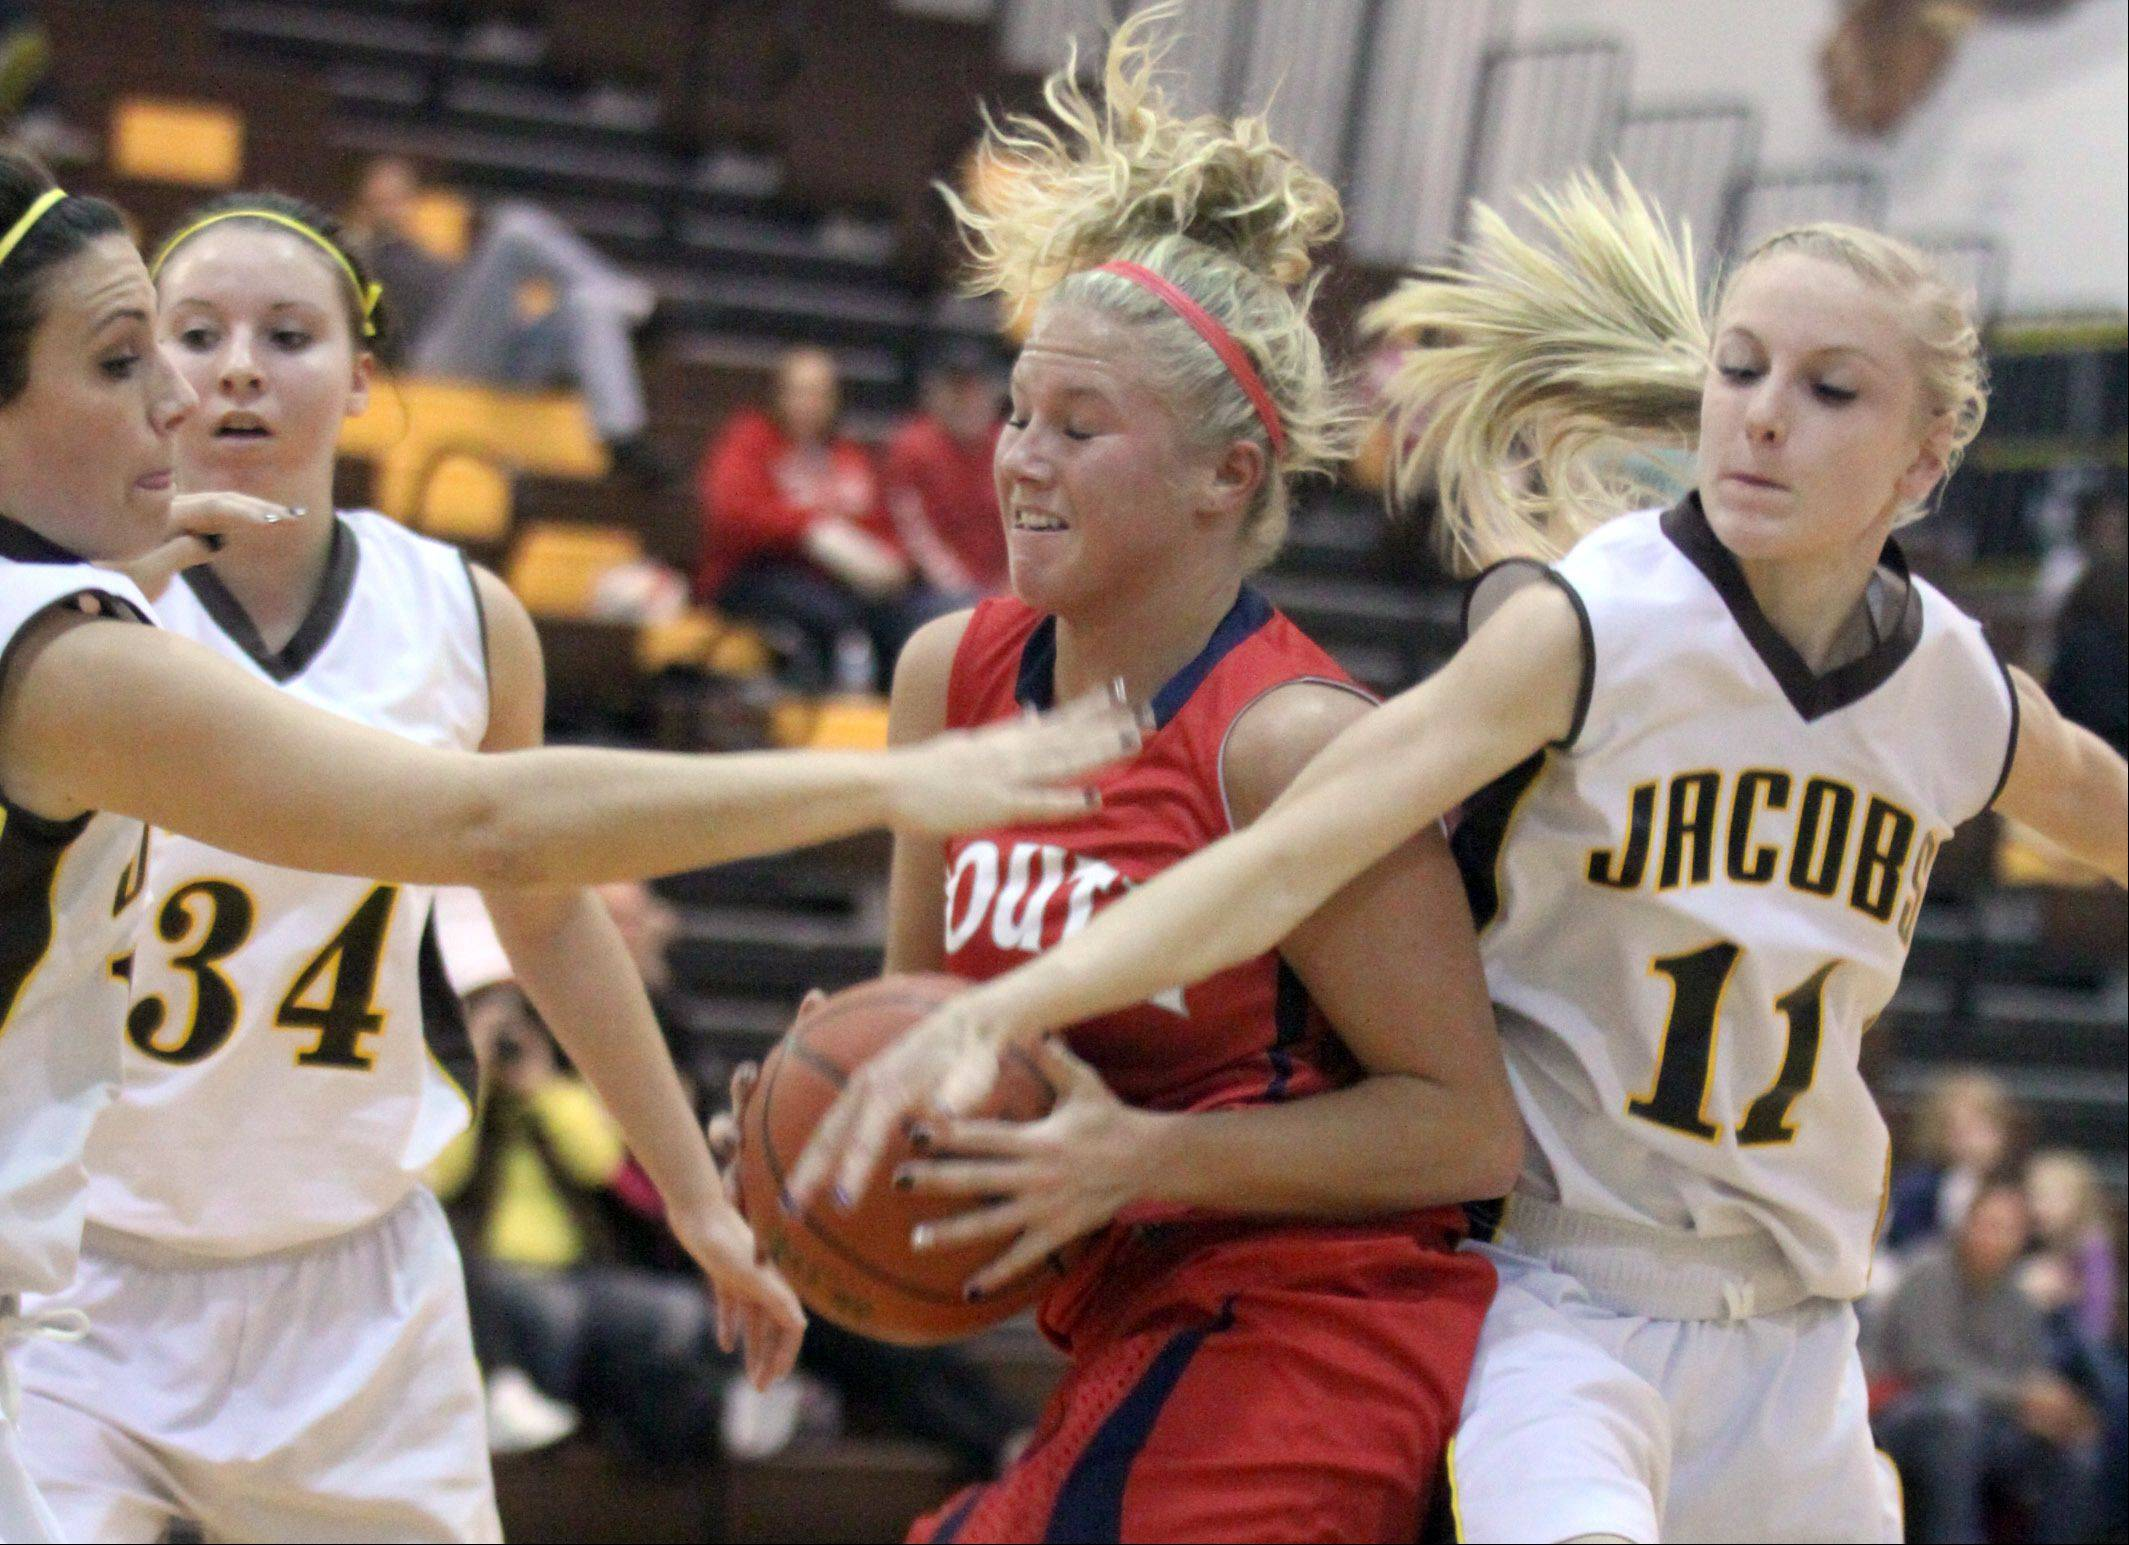 Jacobs� Payton Berg, left, and Lauren Van Vlierbergen, right try to stop the progress of South Elgin�s Kara Rodriguez, center, during a varsity basketball game at Algonquin on Tuesday night.